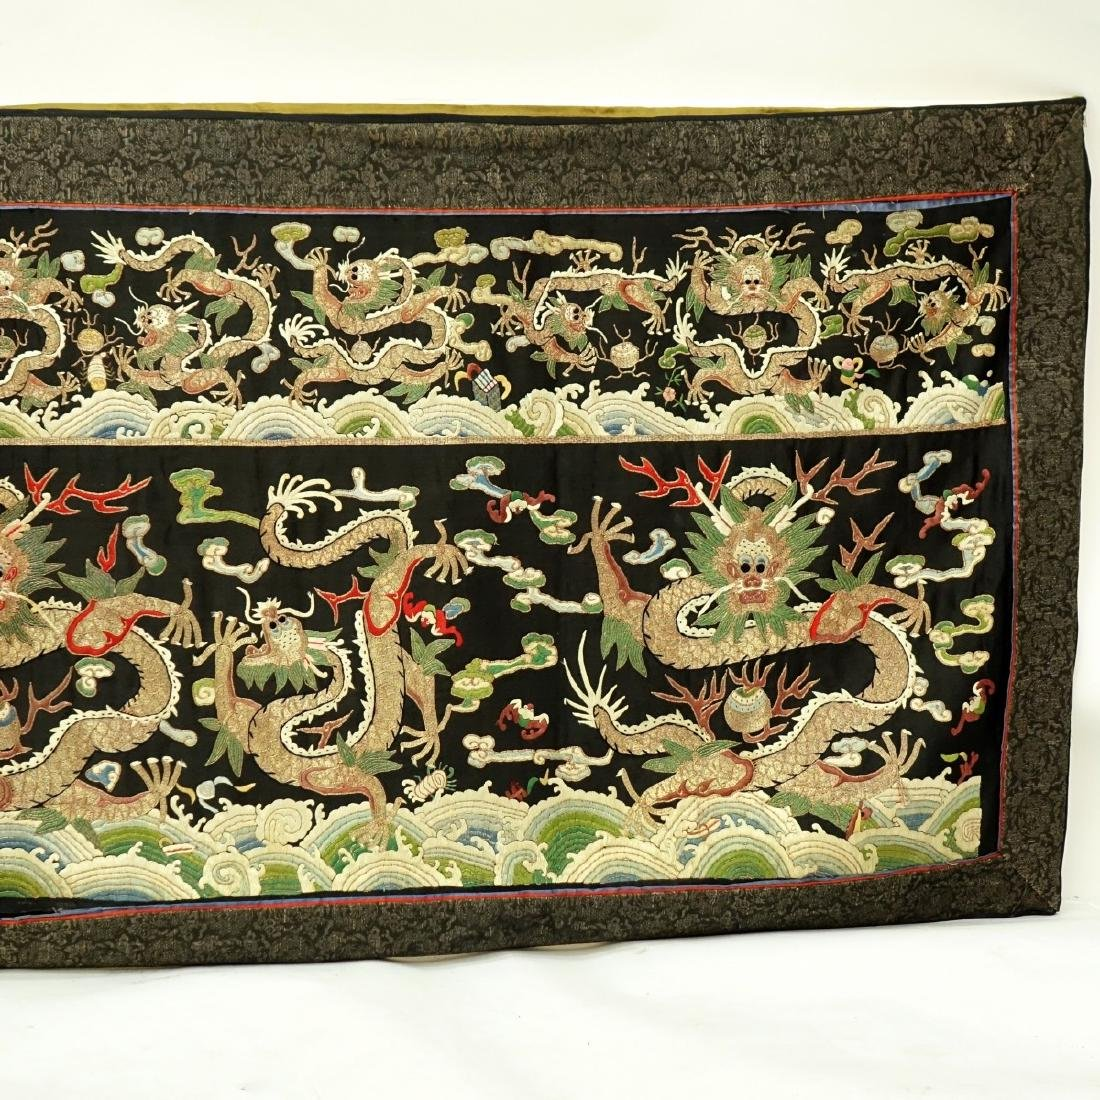 Fine Quality Antique Chinese Silk Embroidery - 4